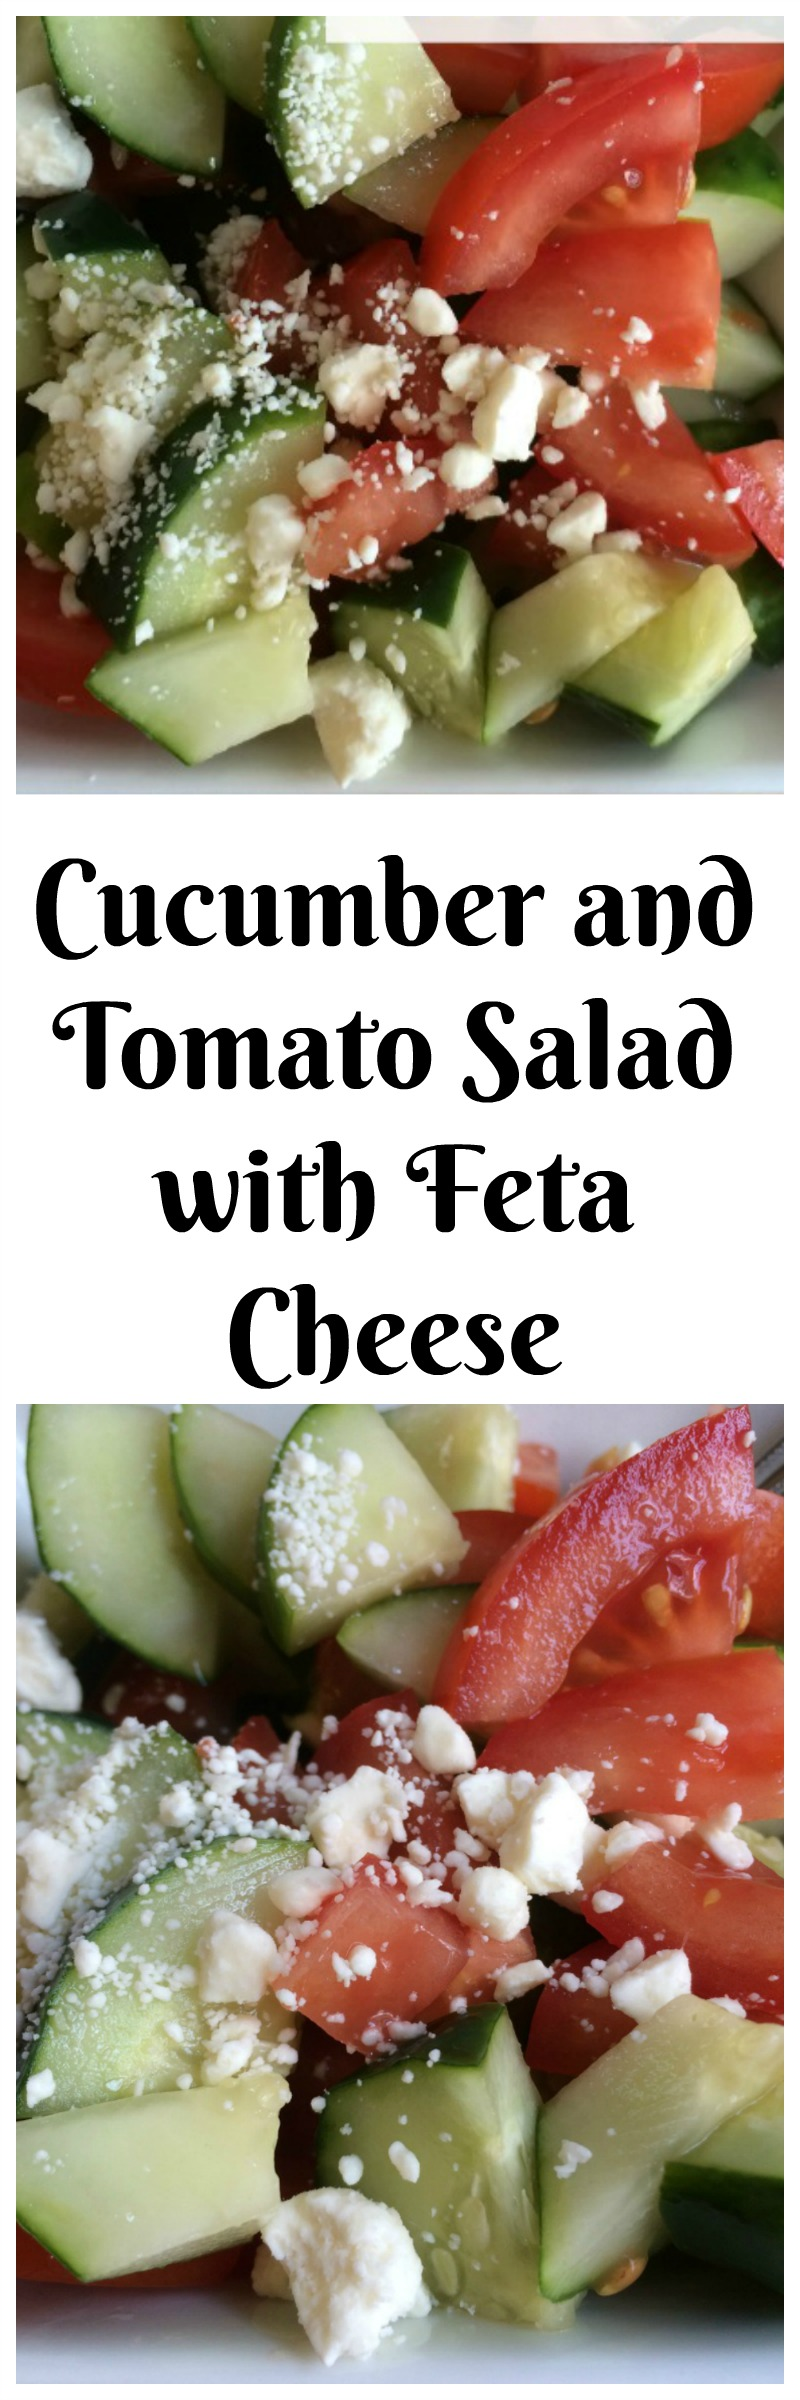 Cucumber and Tomato Salad Recipe--the perfect warm weather side dish or easy lunch! It is cool and refreshing and requires no cooking and it is oh, so good!